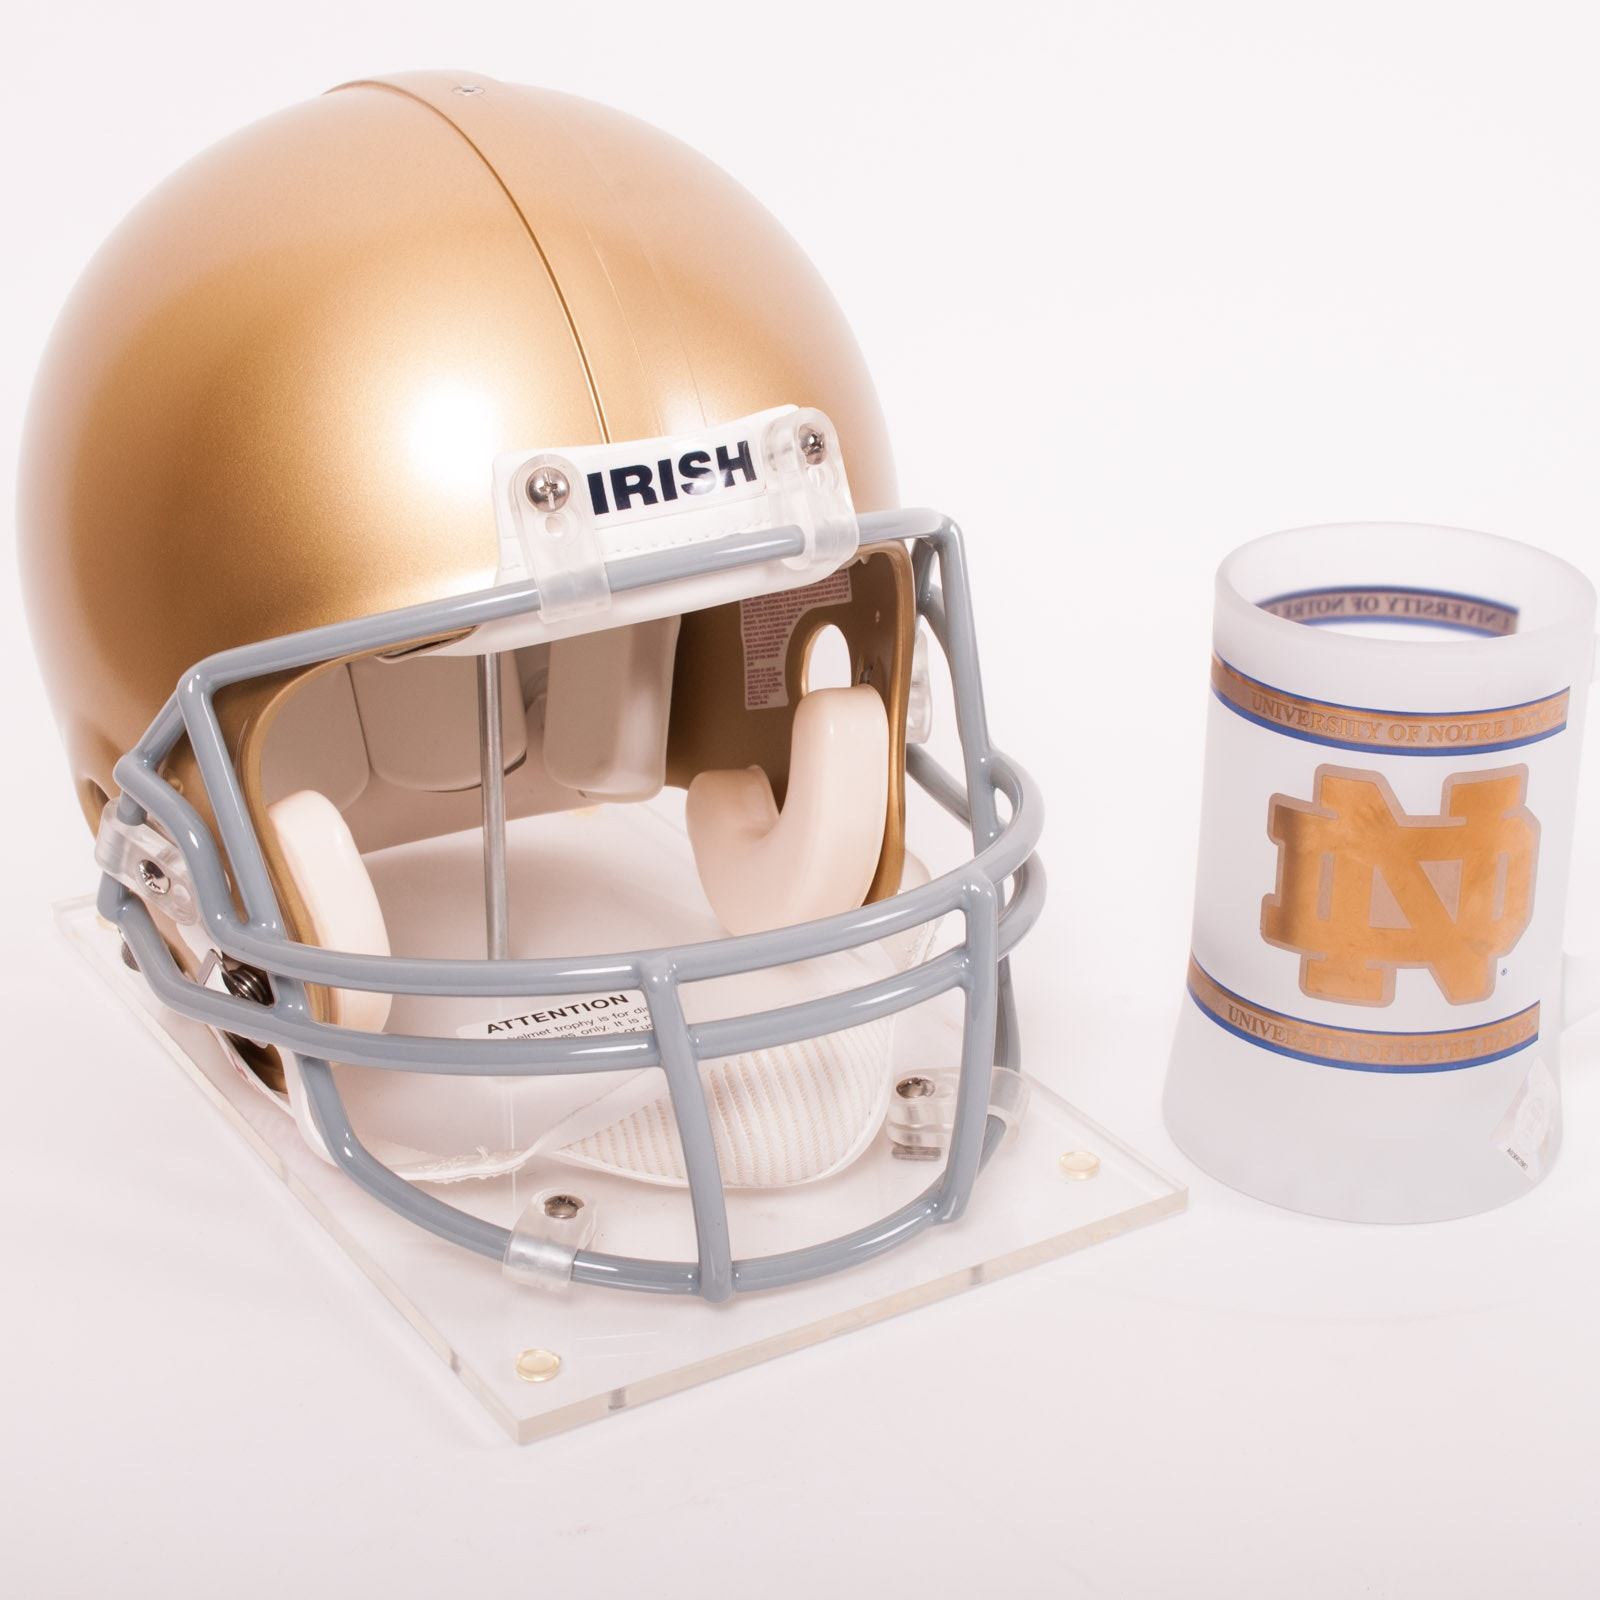 "Notre Dame ""Fighting Irish"" Football Helmet and Mug"